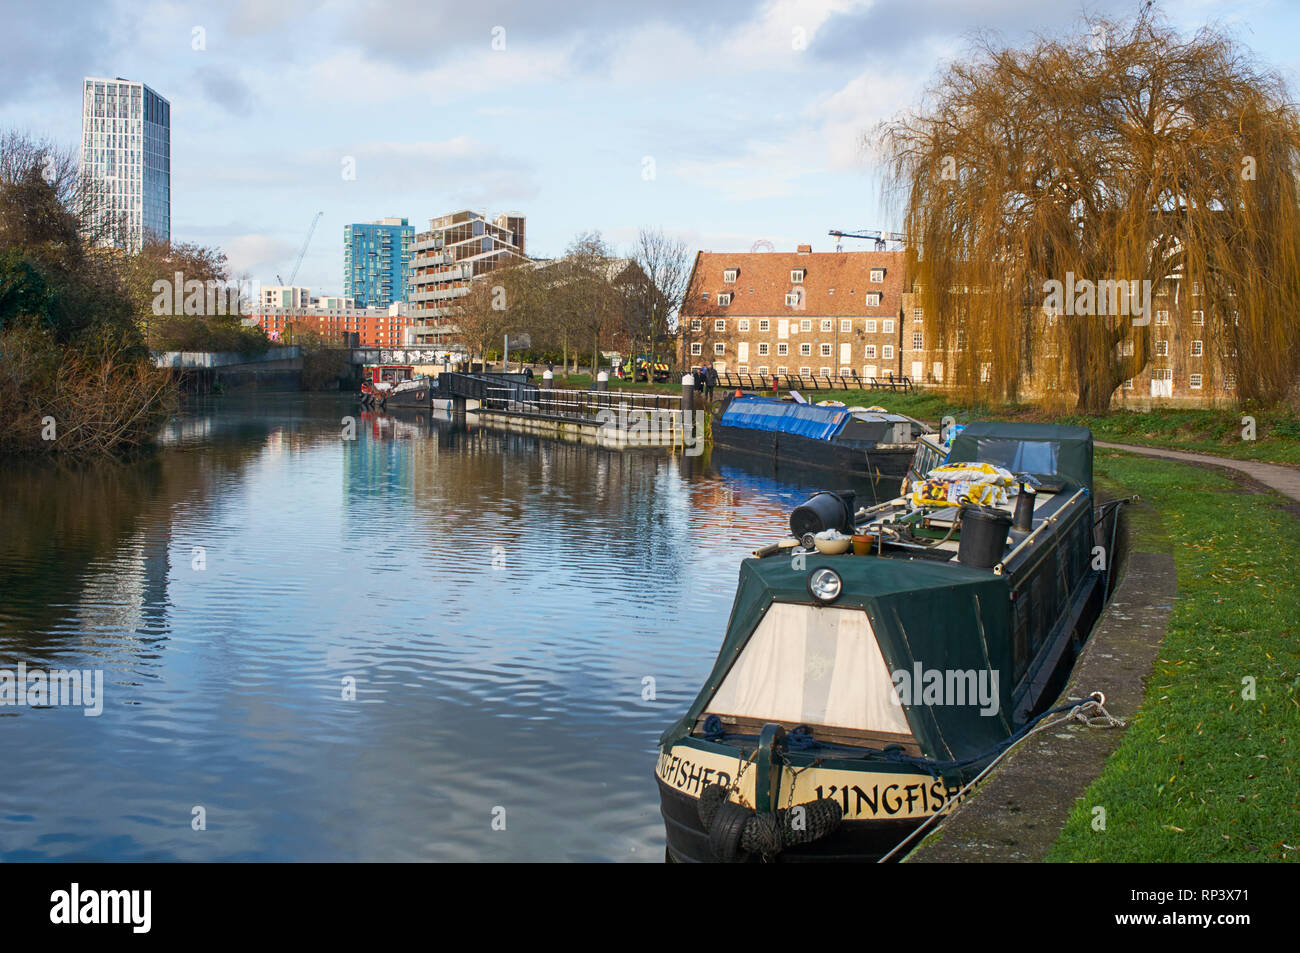 The River Lea near Three Mills Island, Bromley-By-Bow, East London UK - Stock Image